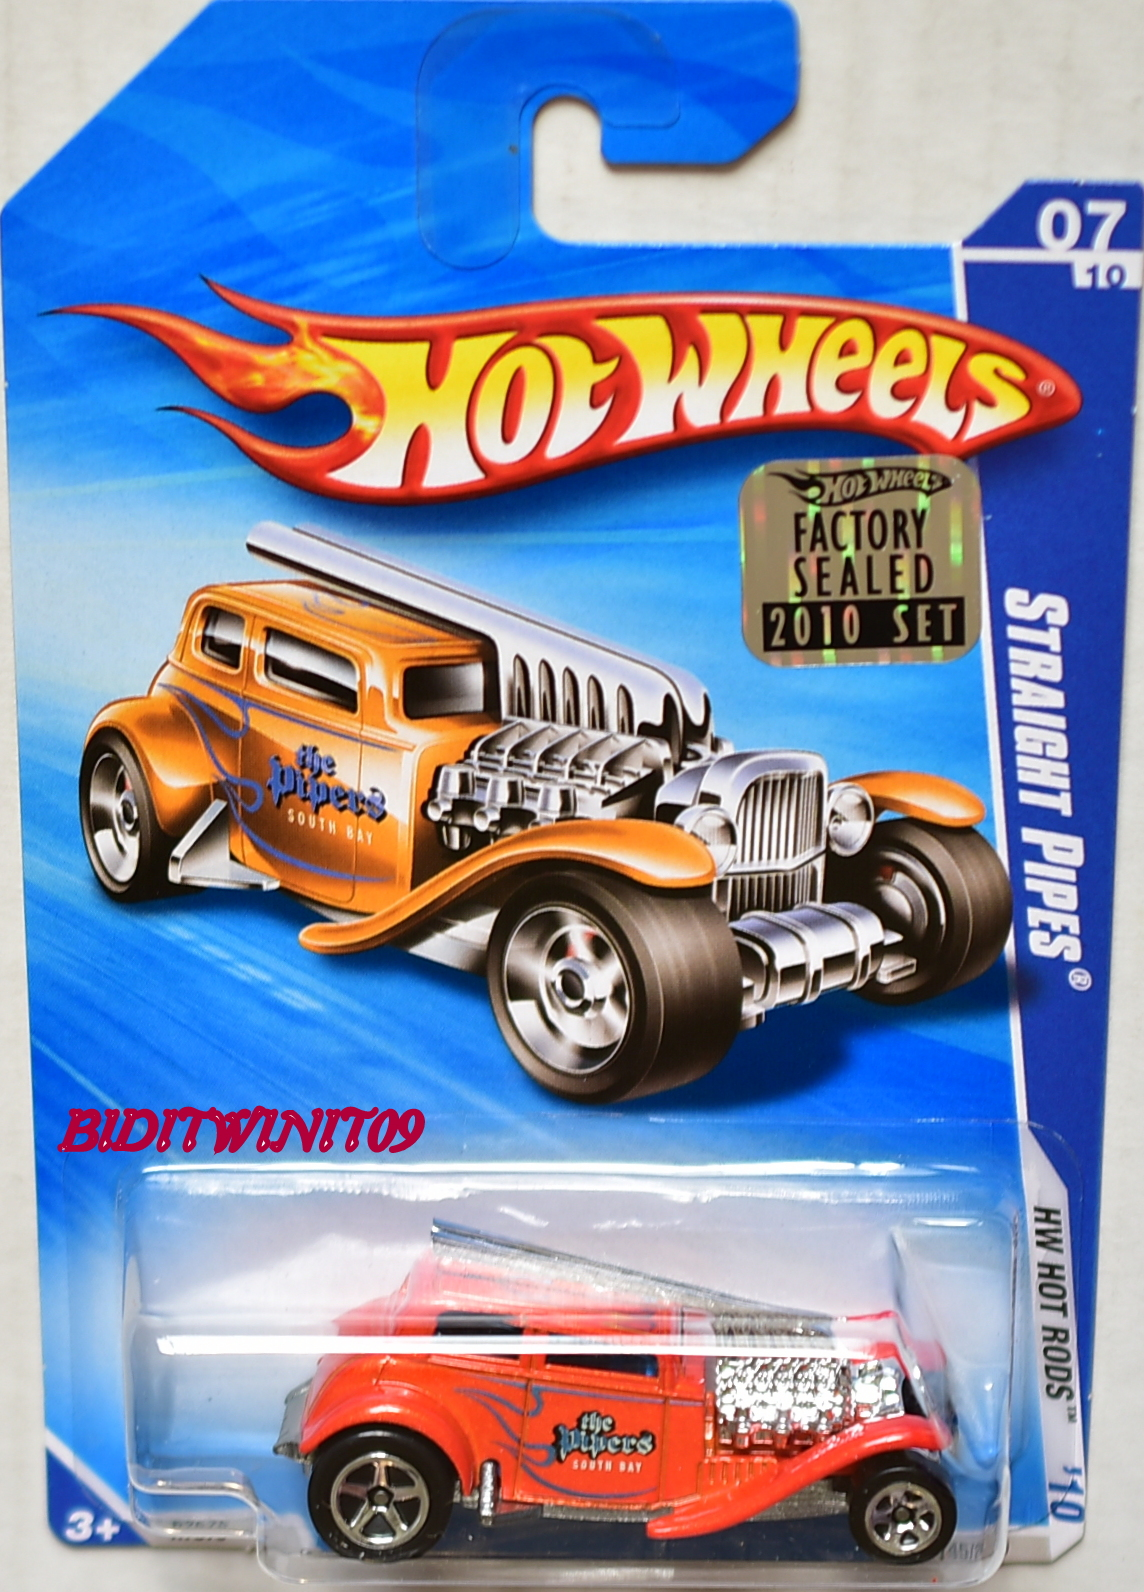 HOT WHEELS 2010 HW HOT RODS STRAIGHT PIPES ORANGE FACTORY SEALED